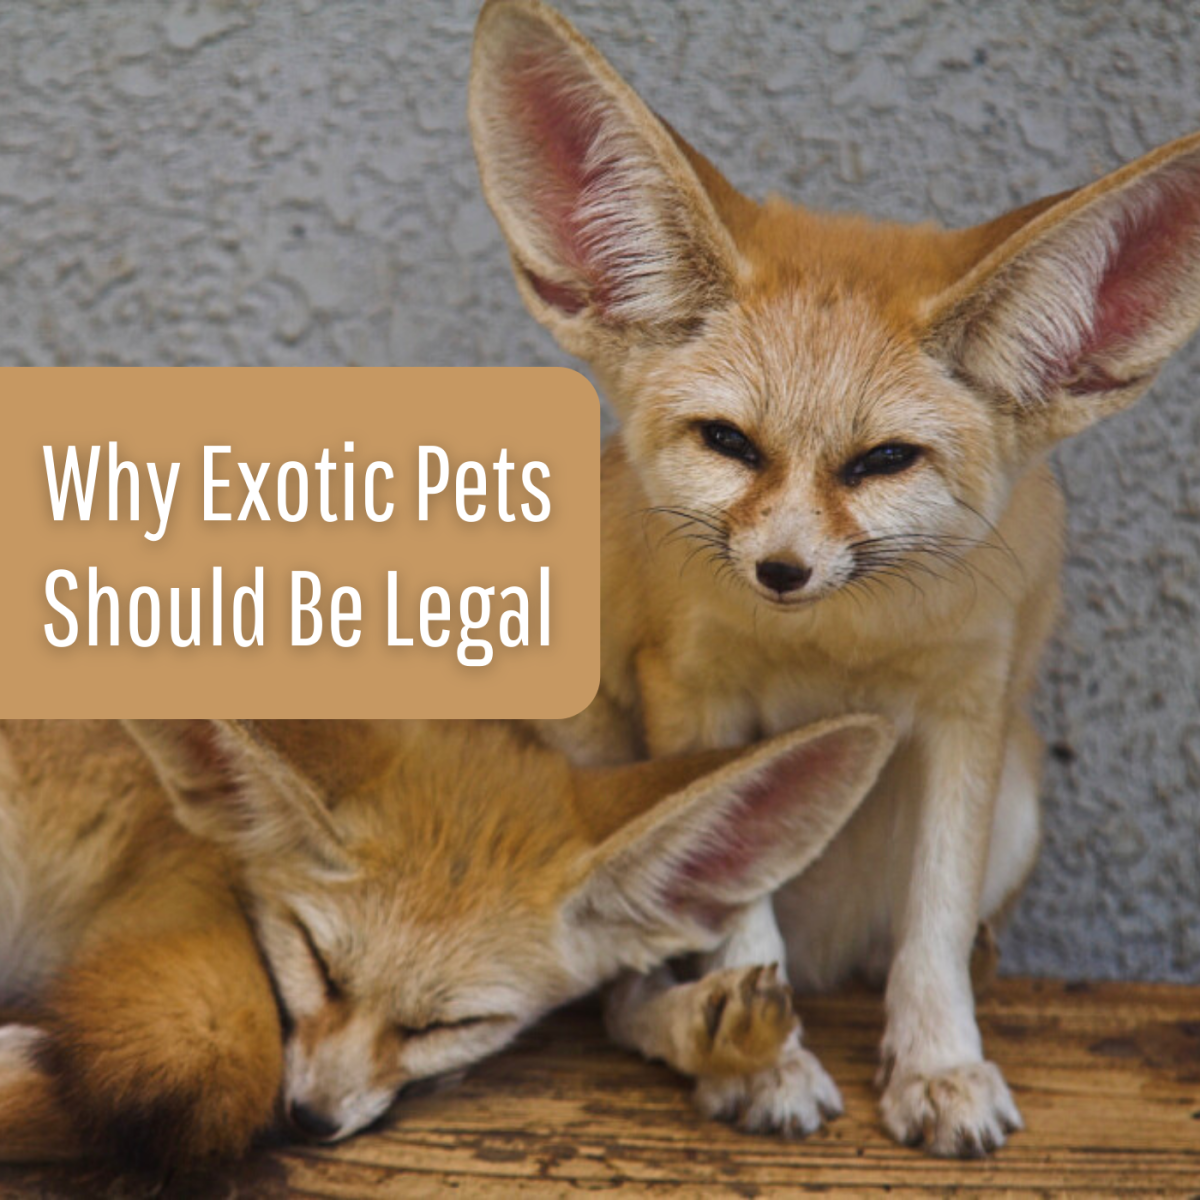 Discover some arguments in favor of legalizing exotic pets.